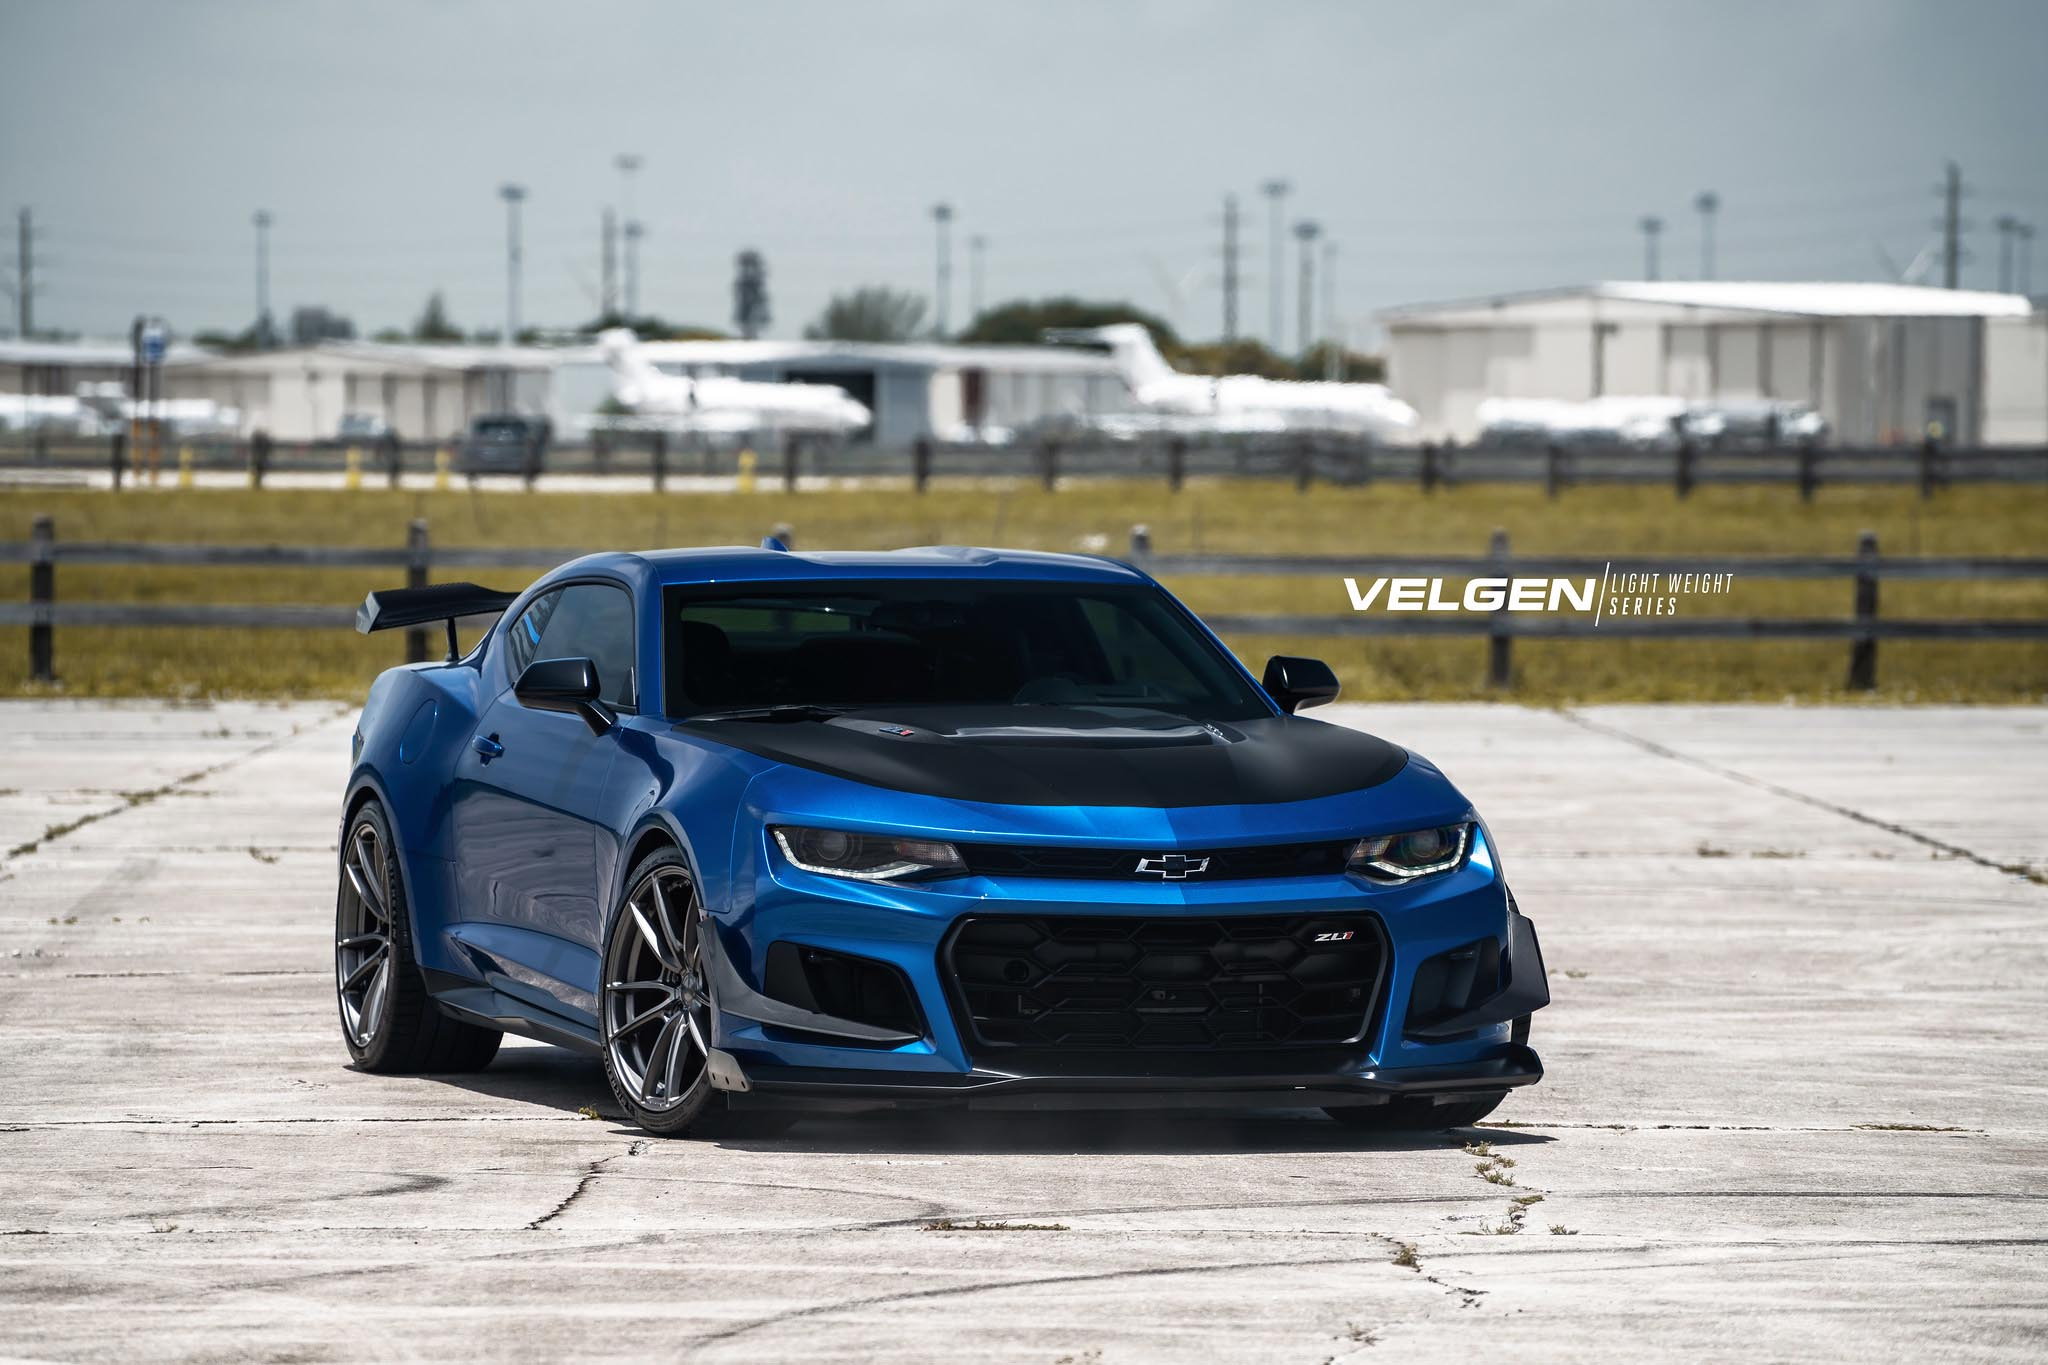 2018 Chevrolet Camaro Zl1 1le 6th Gen Blue With Gloss